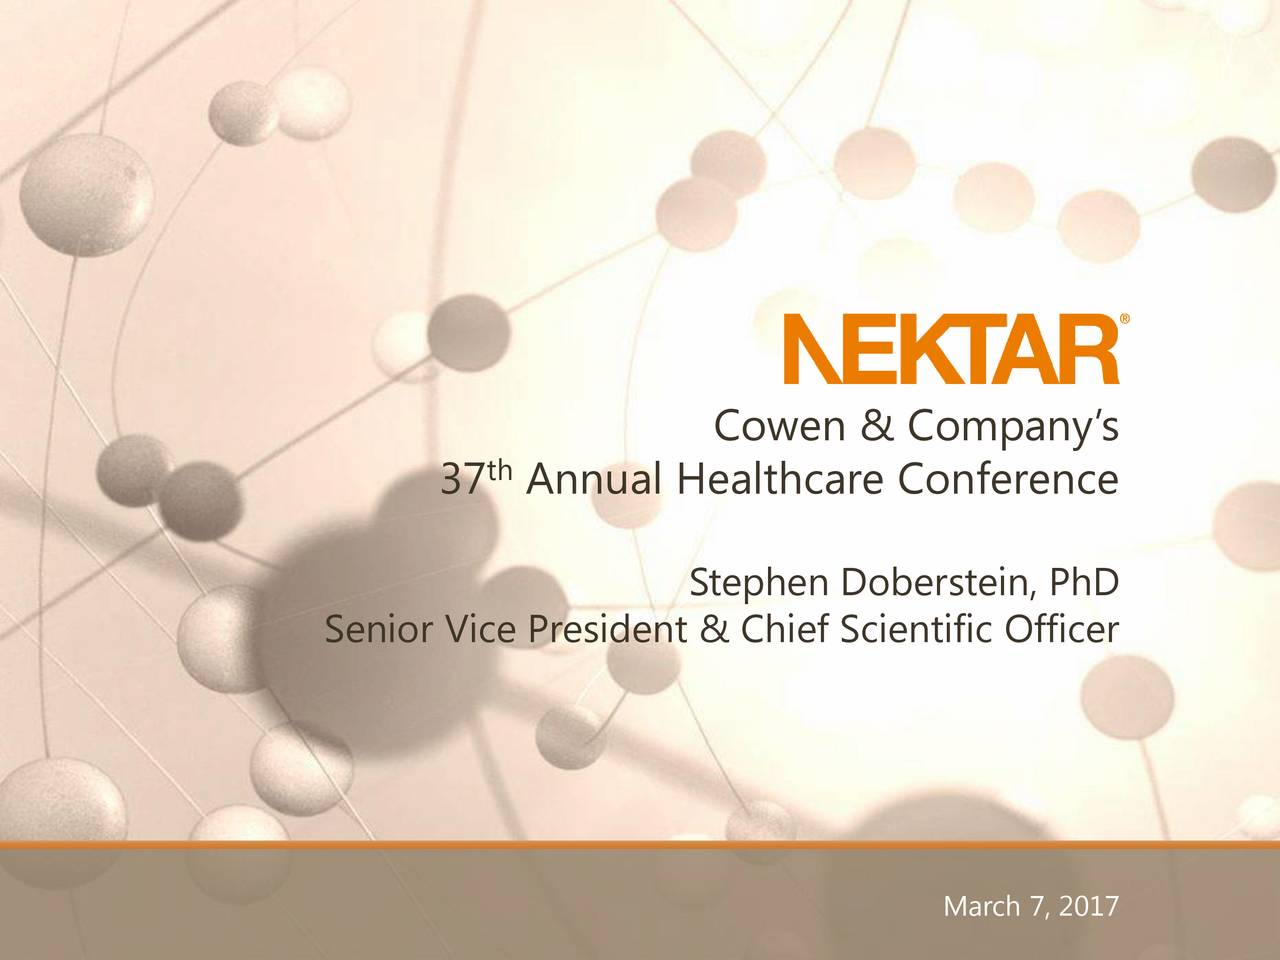 37 Annual Healthcare Conference Stephen Doberstein, PhD Senior Vice President & Chief Scientific Officer March 7, 2017